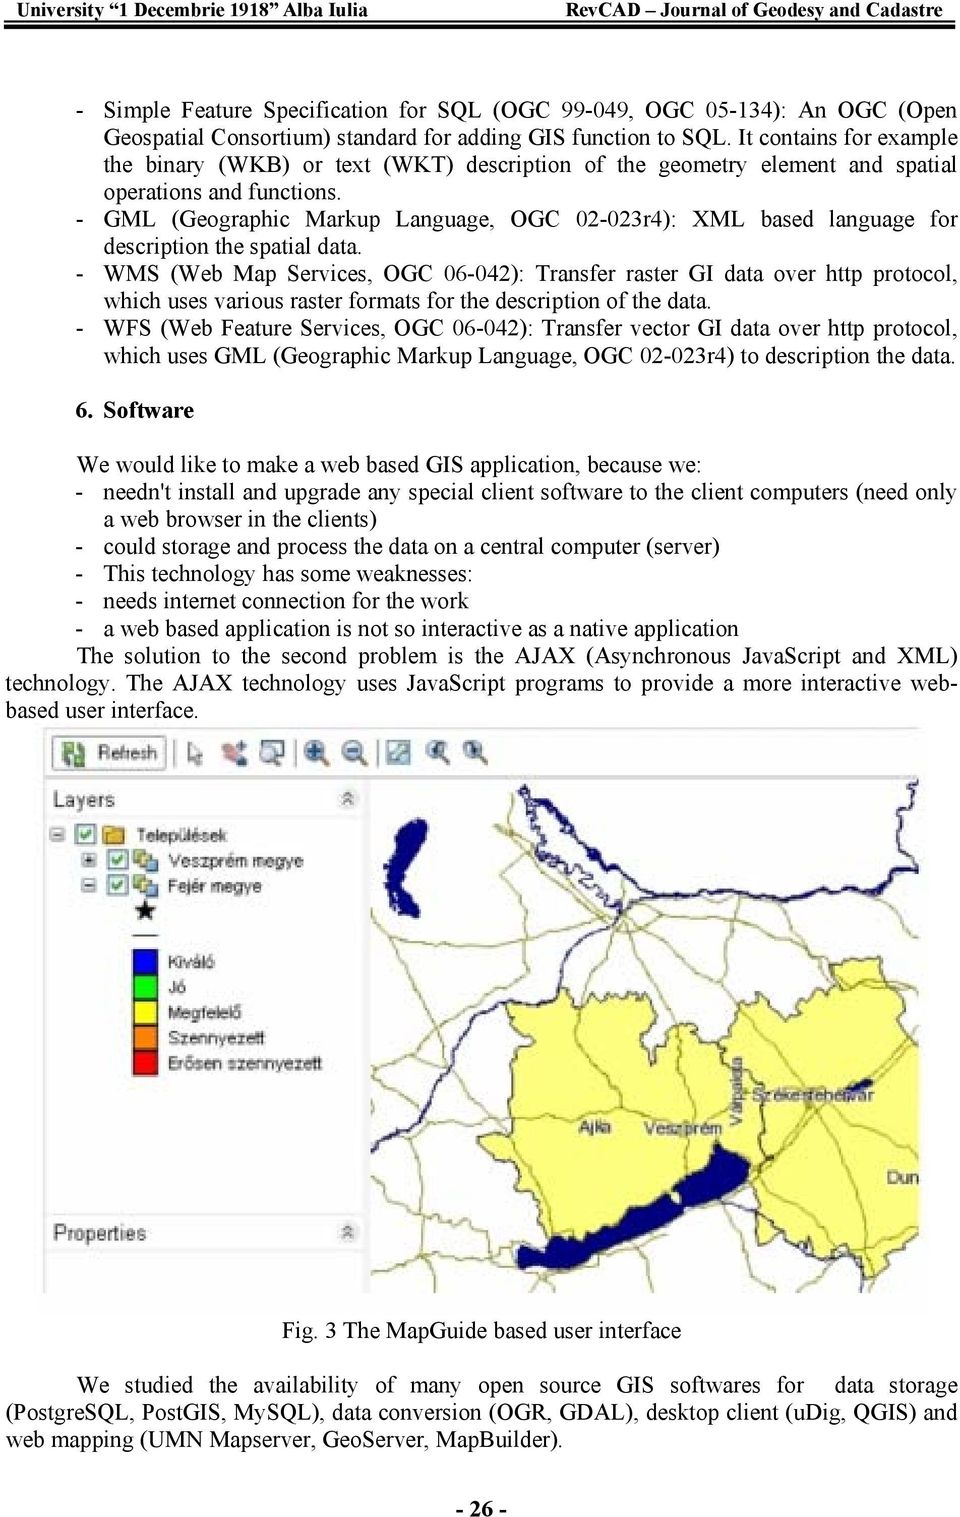 - GML (Geographic Markup Language, OGC 02-023r4): XML based language for description the spatial data.